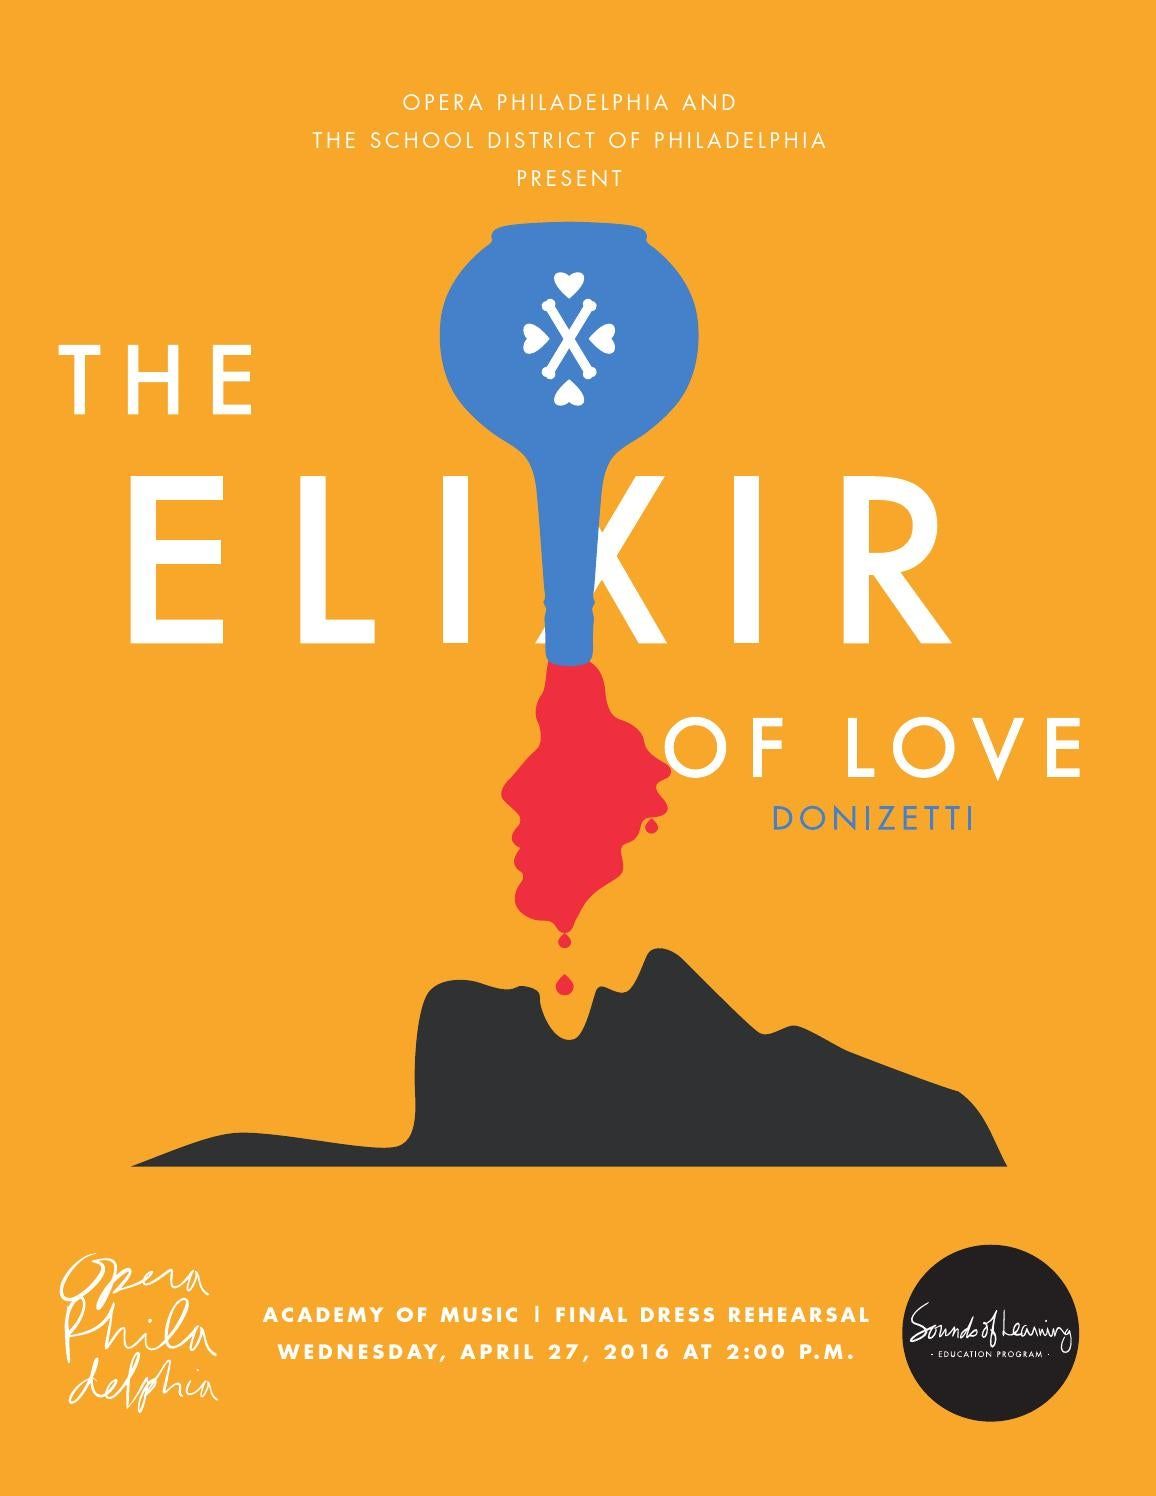 The Elixir Of Love Sounds Of Learning Student Guide By Opera